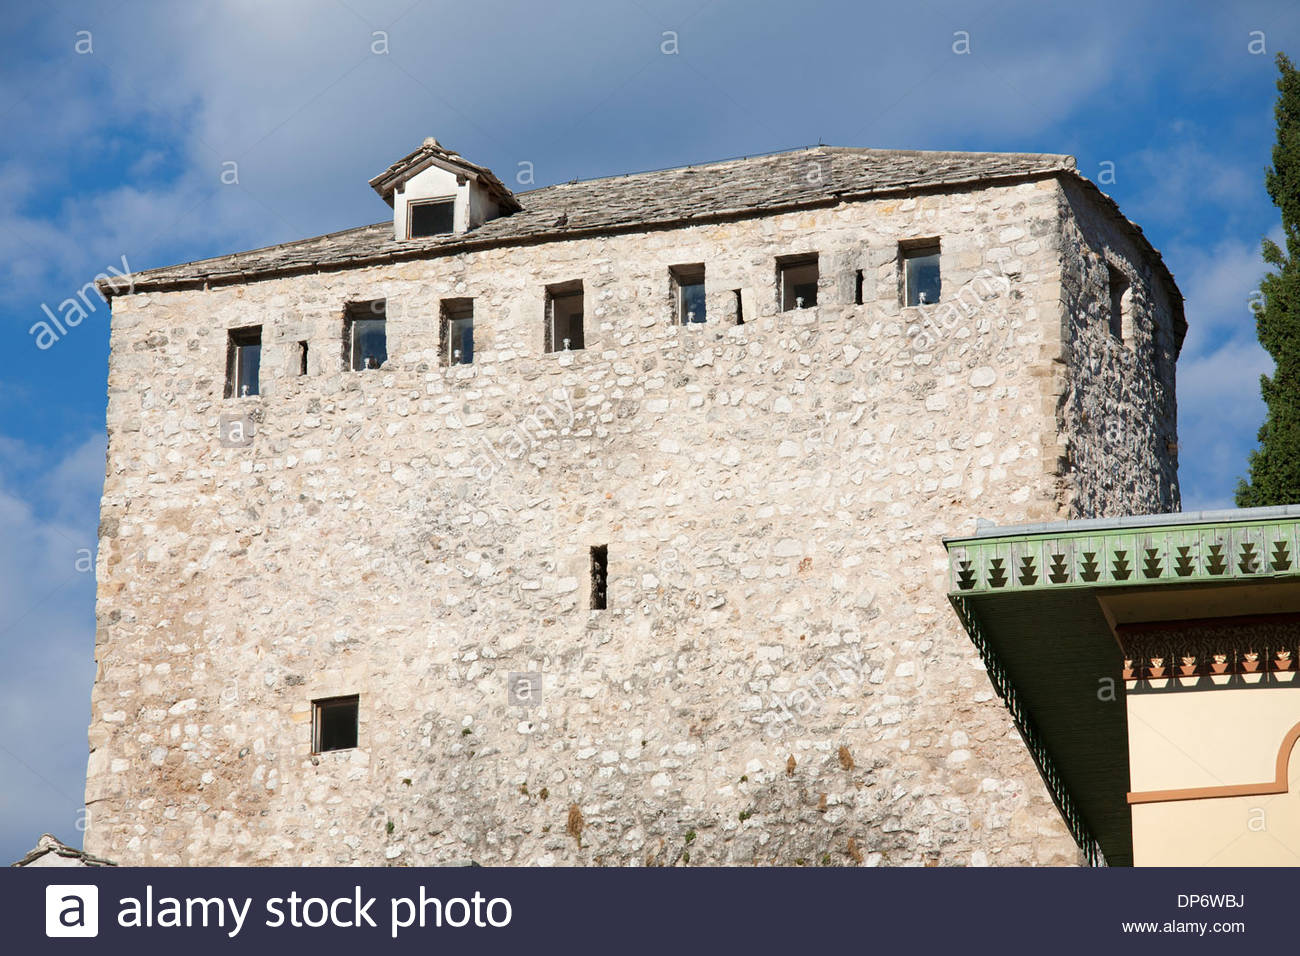 helebija tower,old town east side of mostar,bosnia and herzegovina,europe - Stock Image